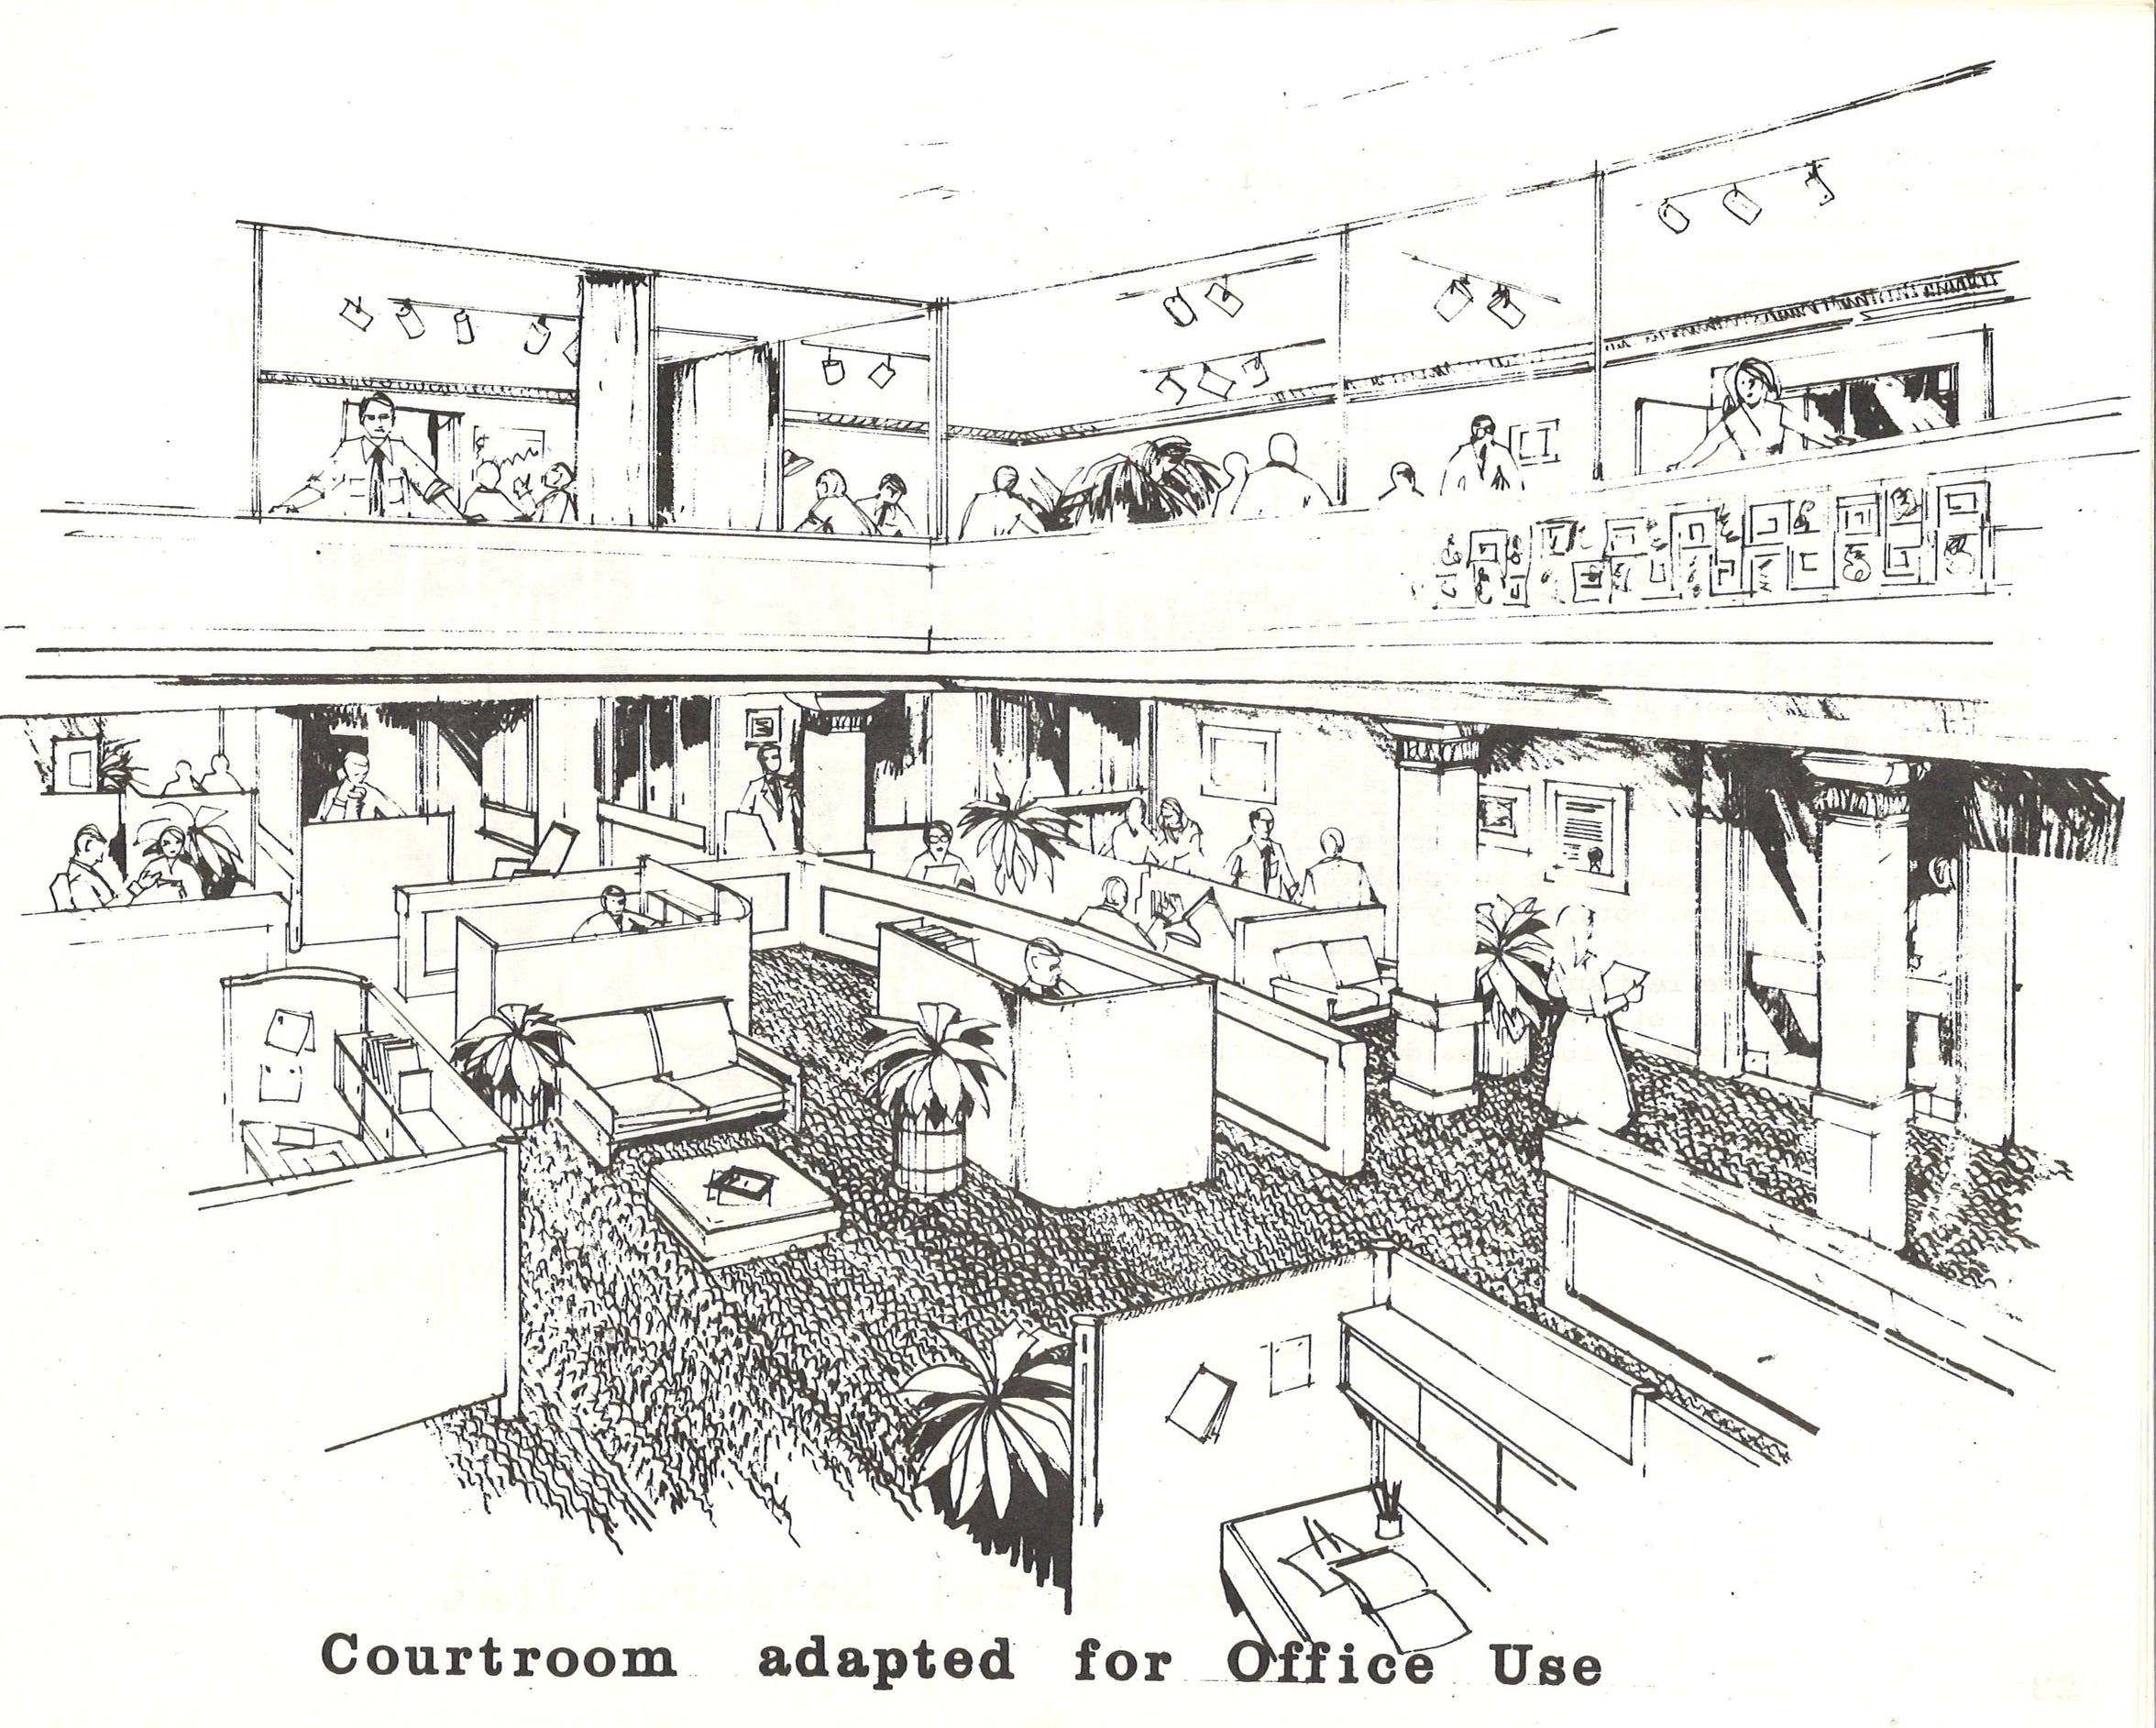 A 1980 plan funded by Charles Bennett and created by Anderson Notter Finegold Inc. included turning the courtrooms in the 1914 Nueces County Courthouse into office and meeting spaces.